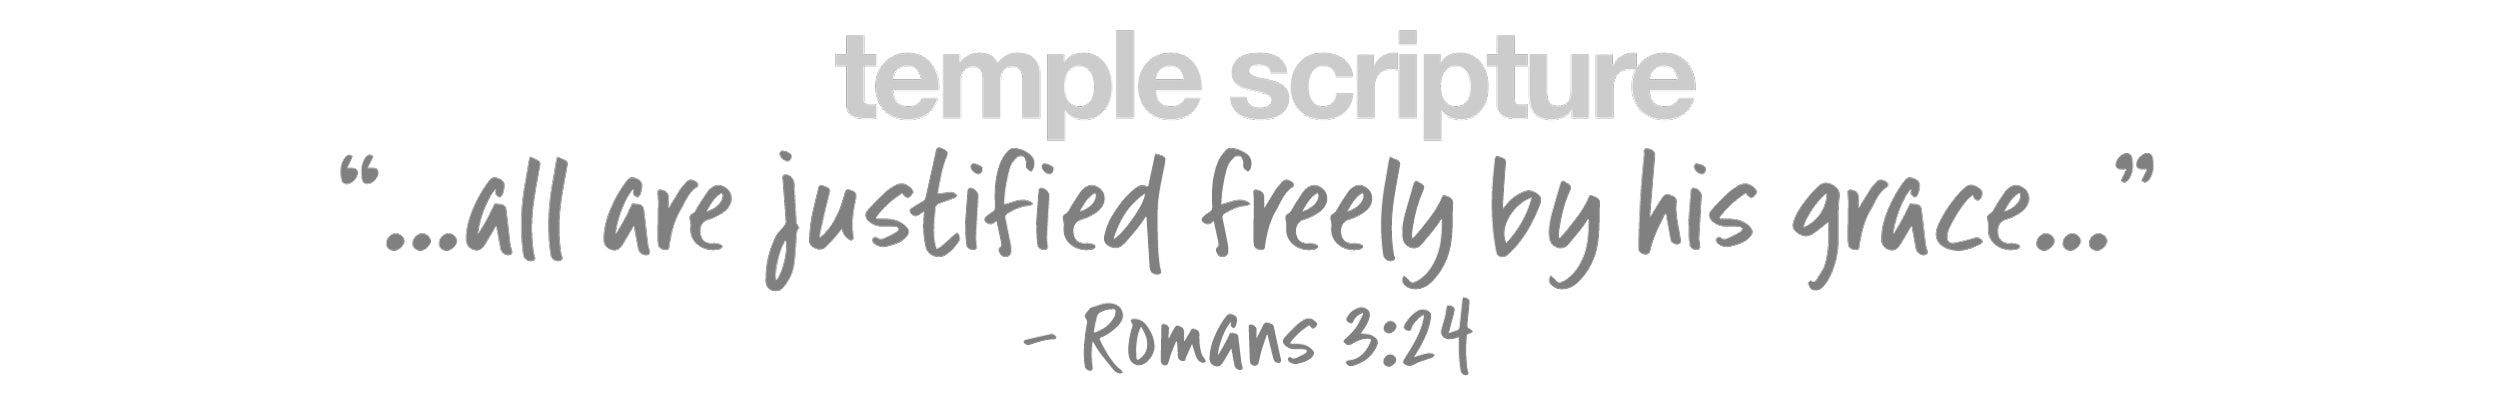 ...all are justified freely by his grace -Roman 3:24